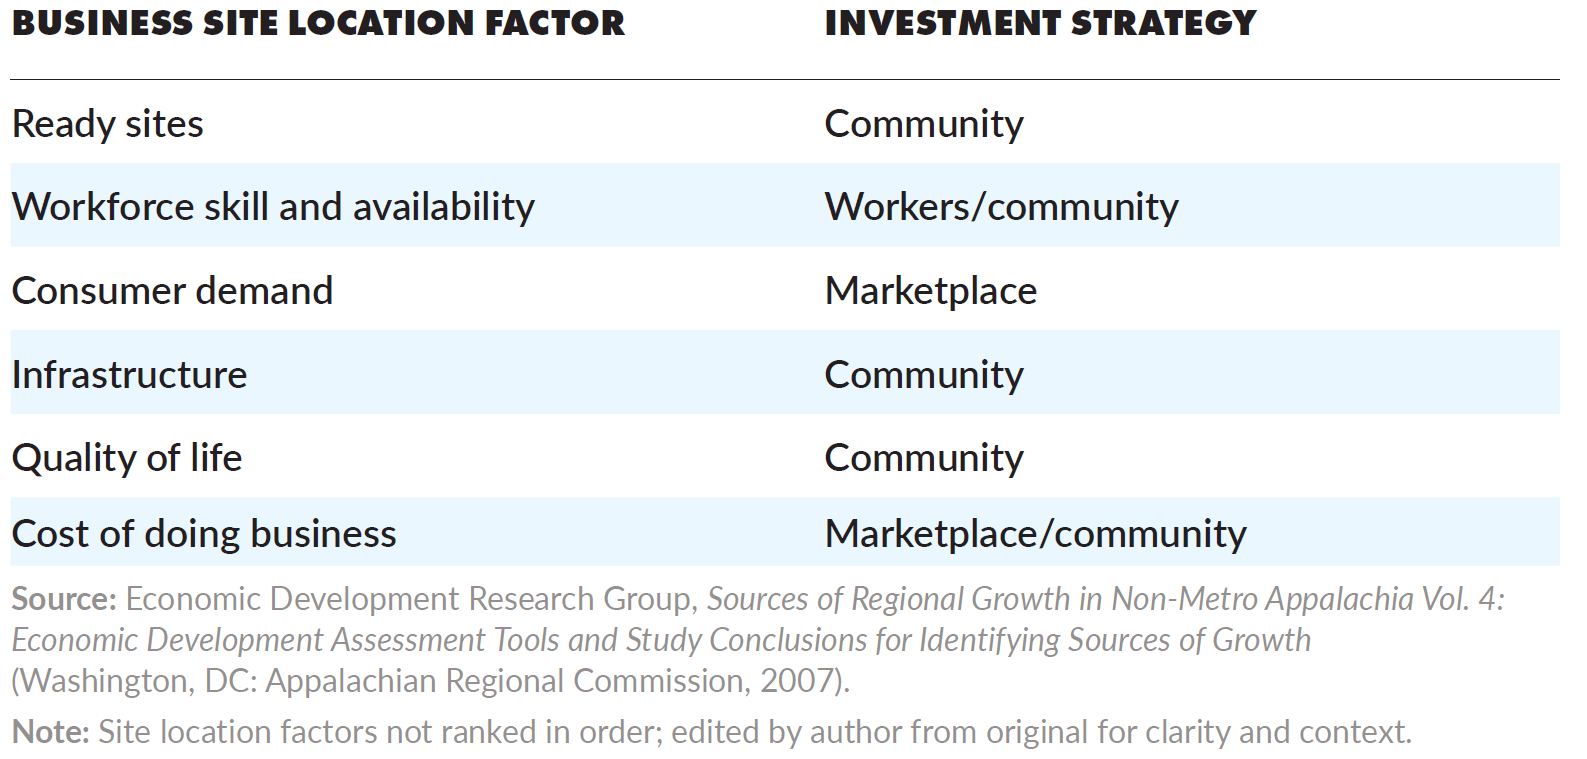 A table of business site location factors and their corresponding investment strategies. Ready sites require investment in the community. Workforce skill and availability require investment in workers and the community. Consumer demand requires investment in the marketplace. Infrastructure requires investment in the community. Quality of life requires investment in the community. And the cost of doing business requires investment in the marketplace and the community.